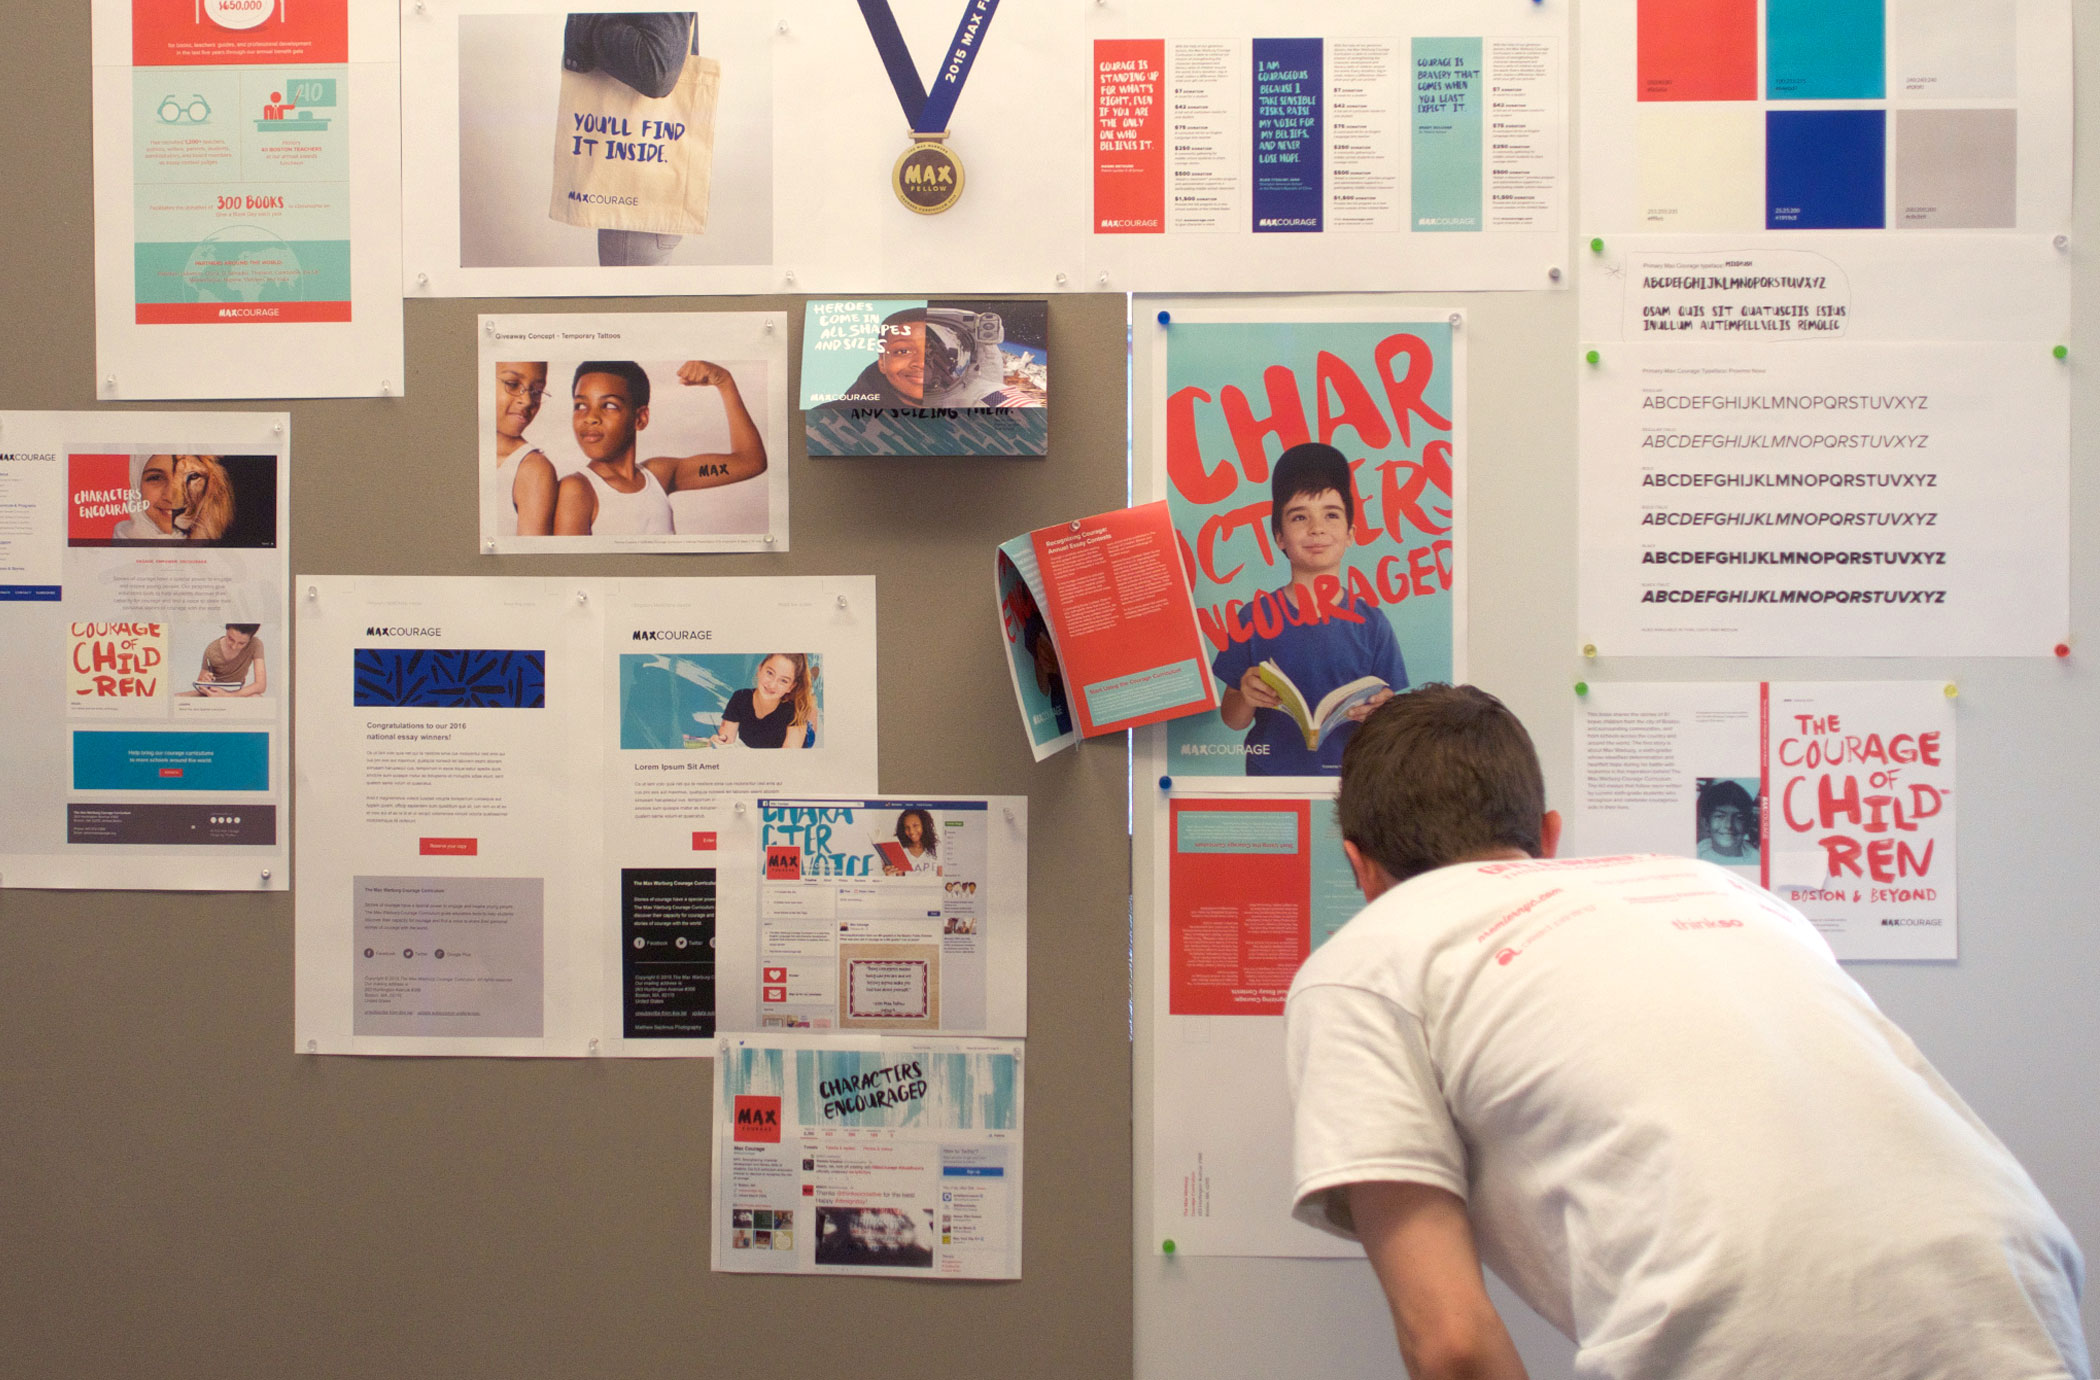 A person leans into to look at designs tacked to the wall for the 2015 Give A Brand design sprint.